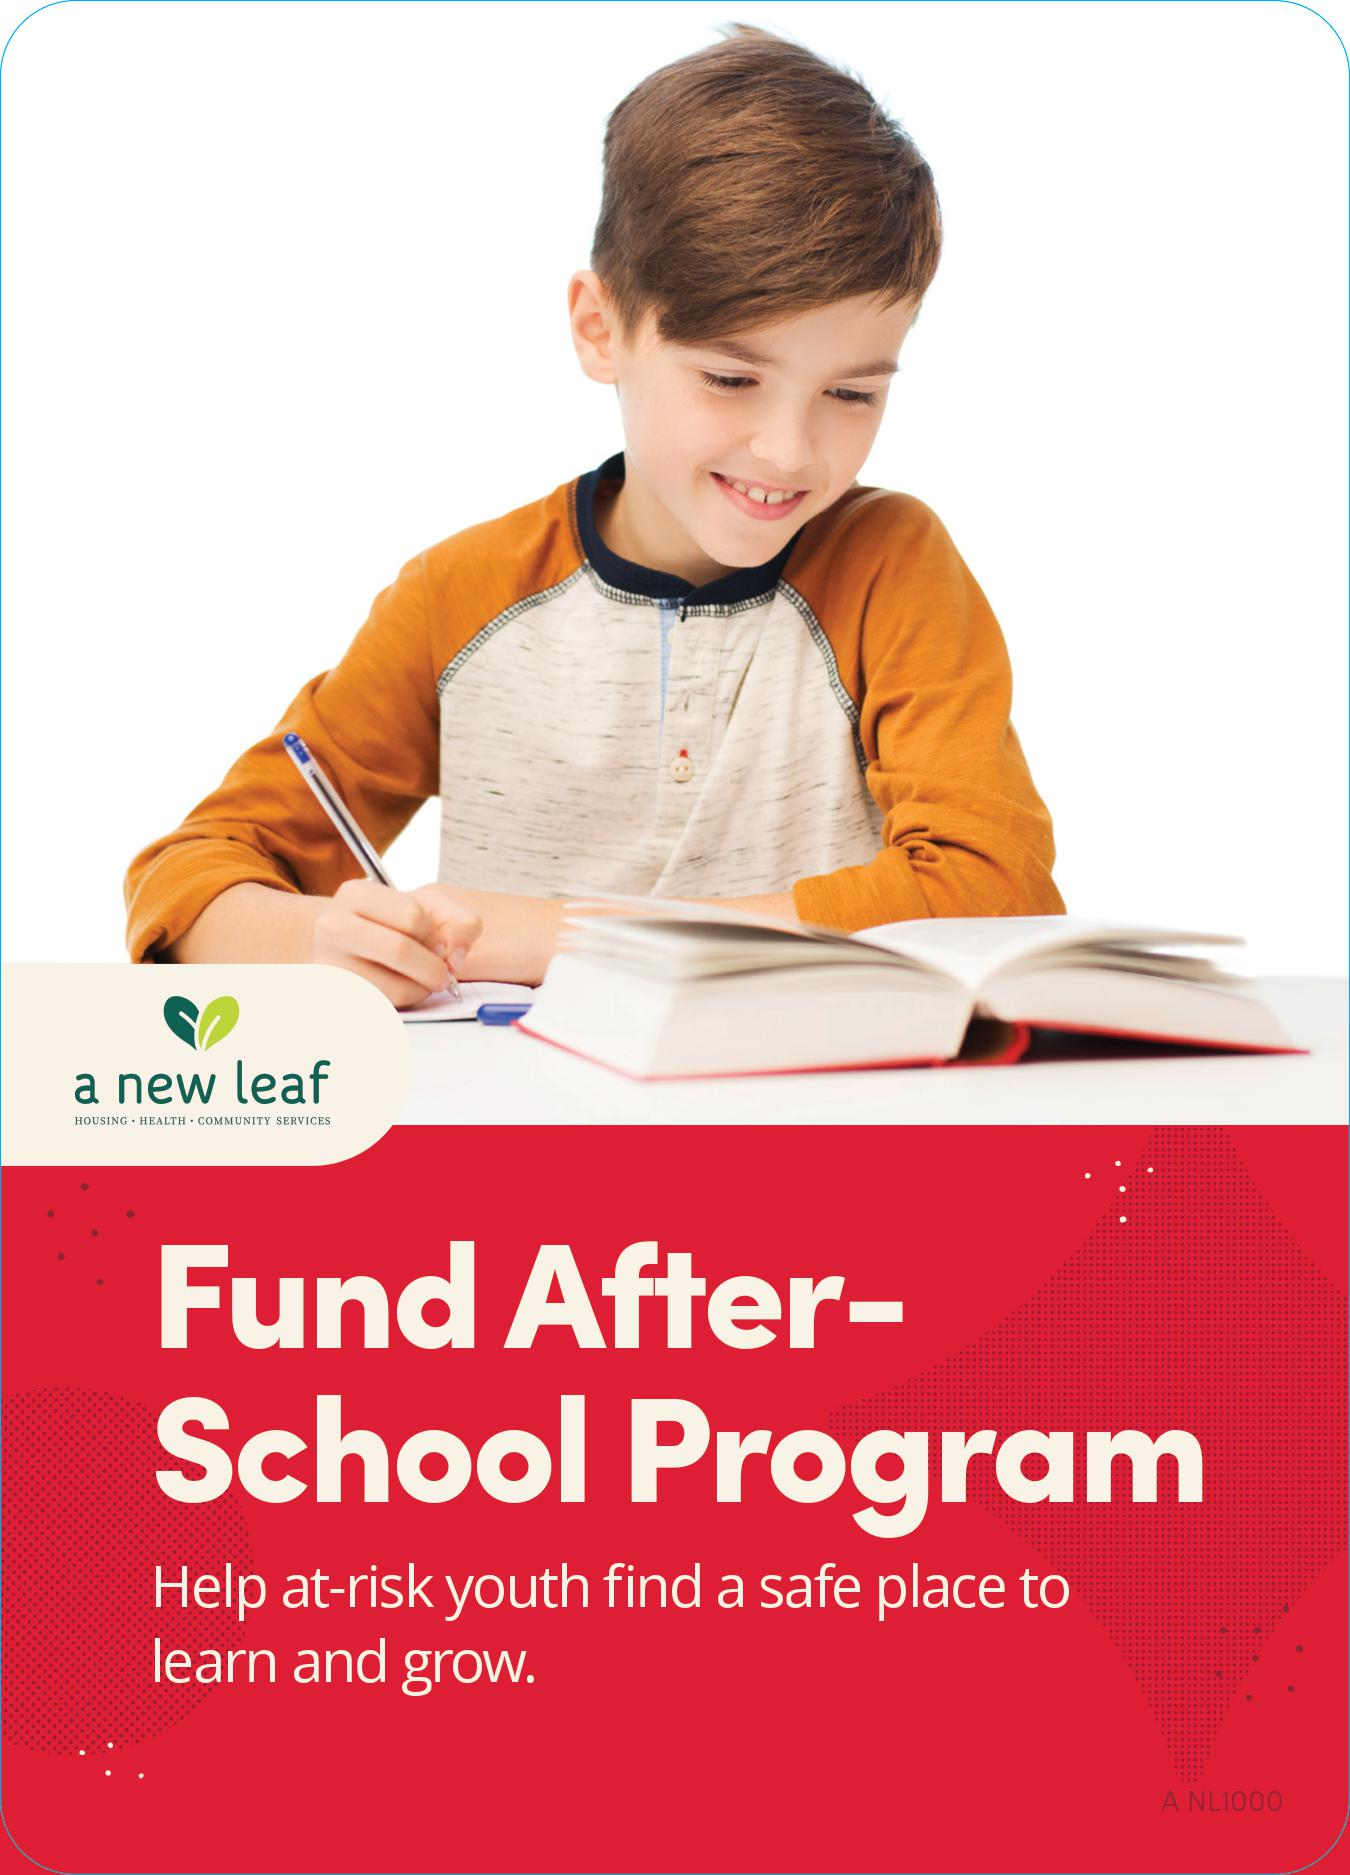 $25 - Education for a Child in Need